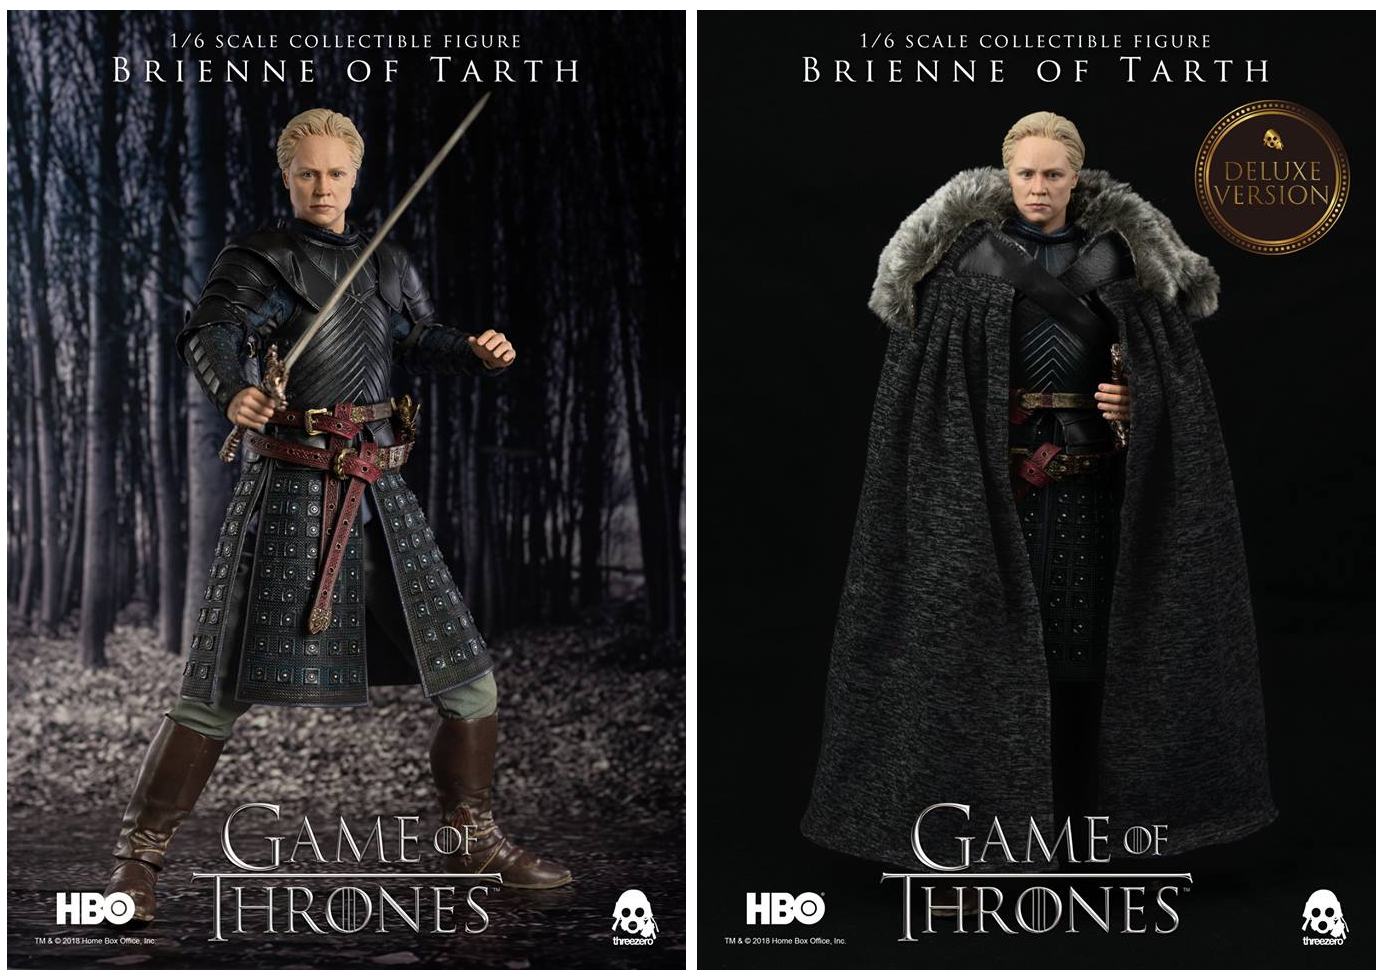 GAME OF THRONES Brienne di tarth Legacy Action Figure